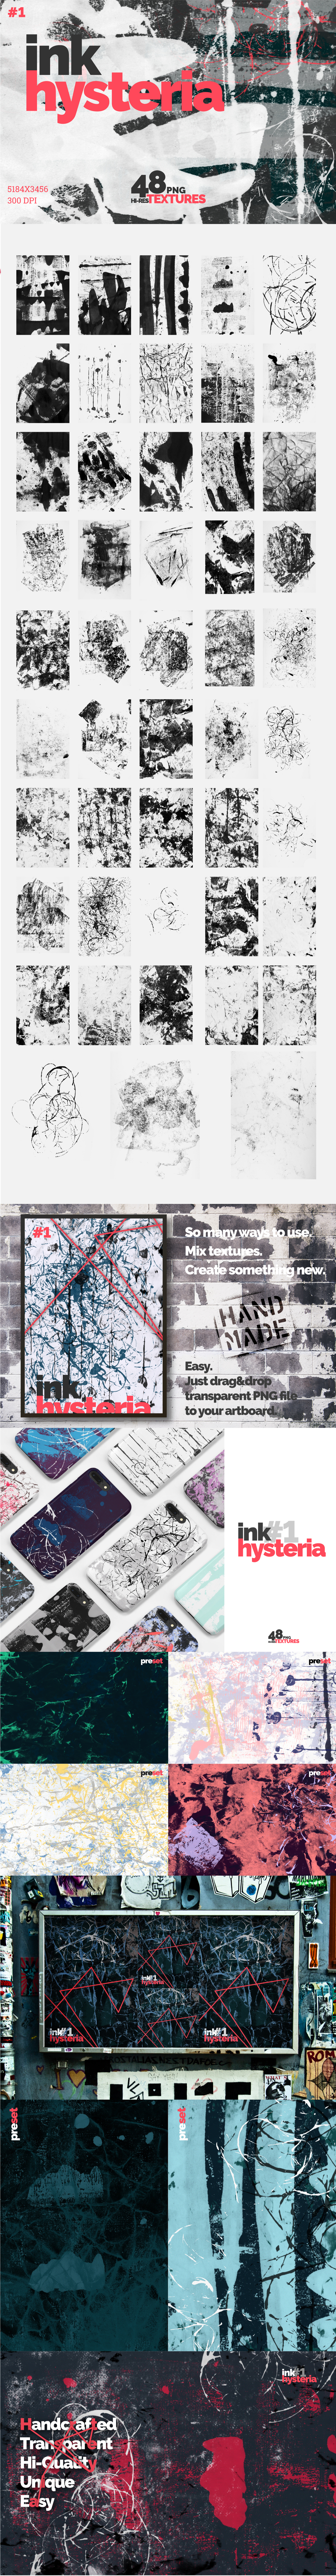 Ink Hysteria | Ink Texture Collection #1